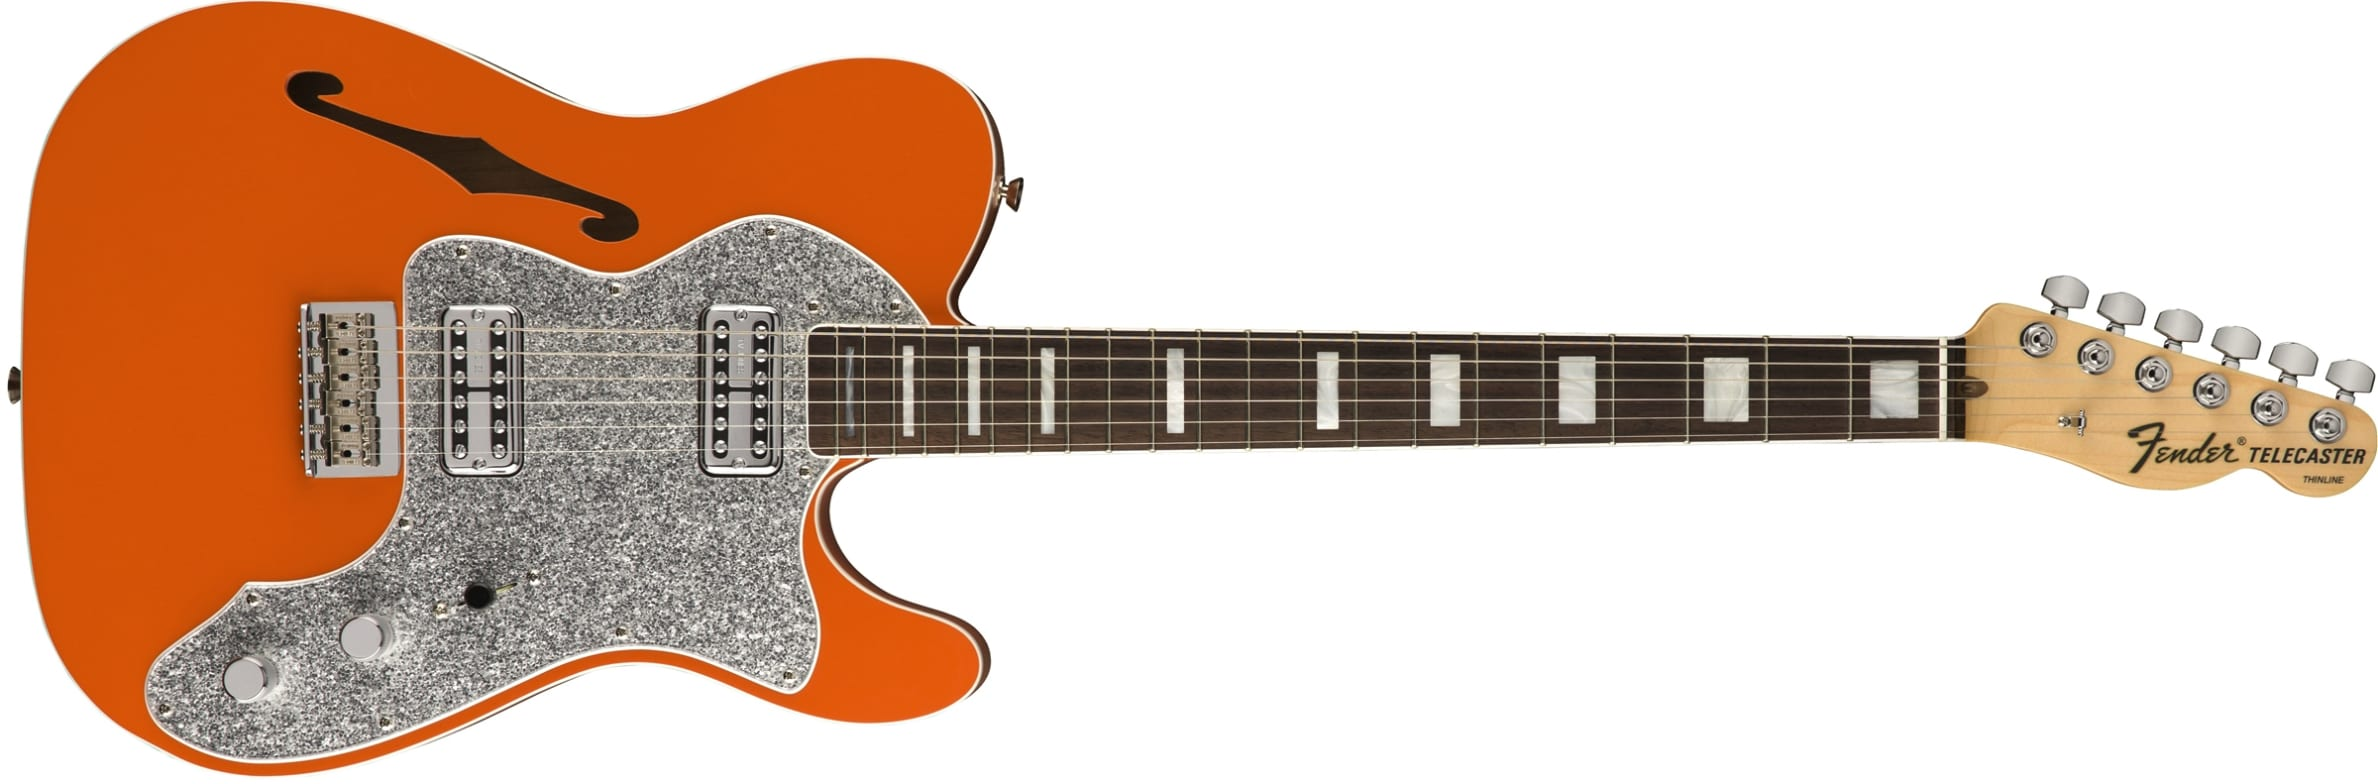 Fender Parallel Universe - 2018 Tele Thinline Super Deluxe limited edition